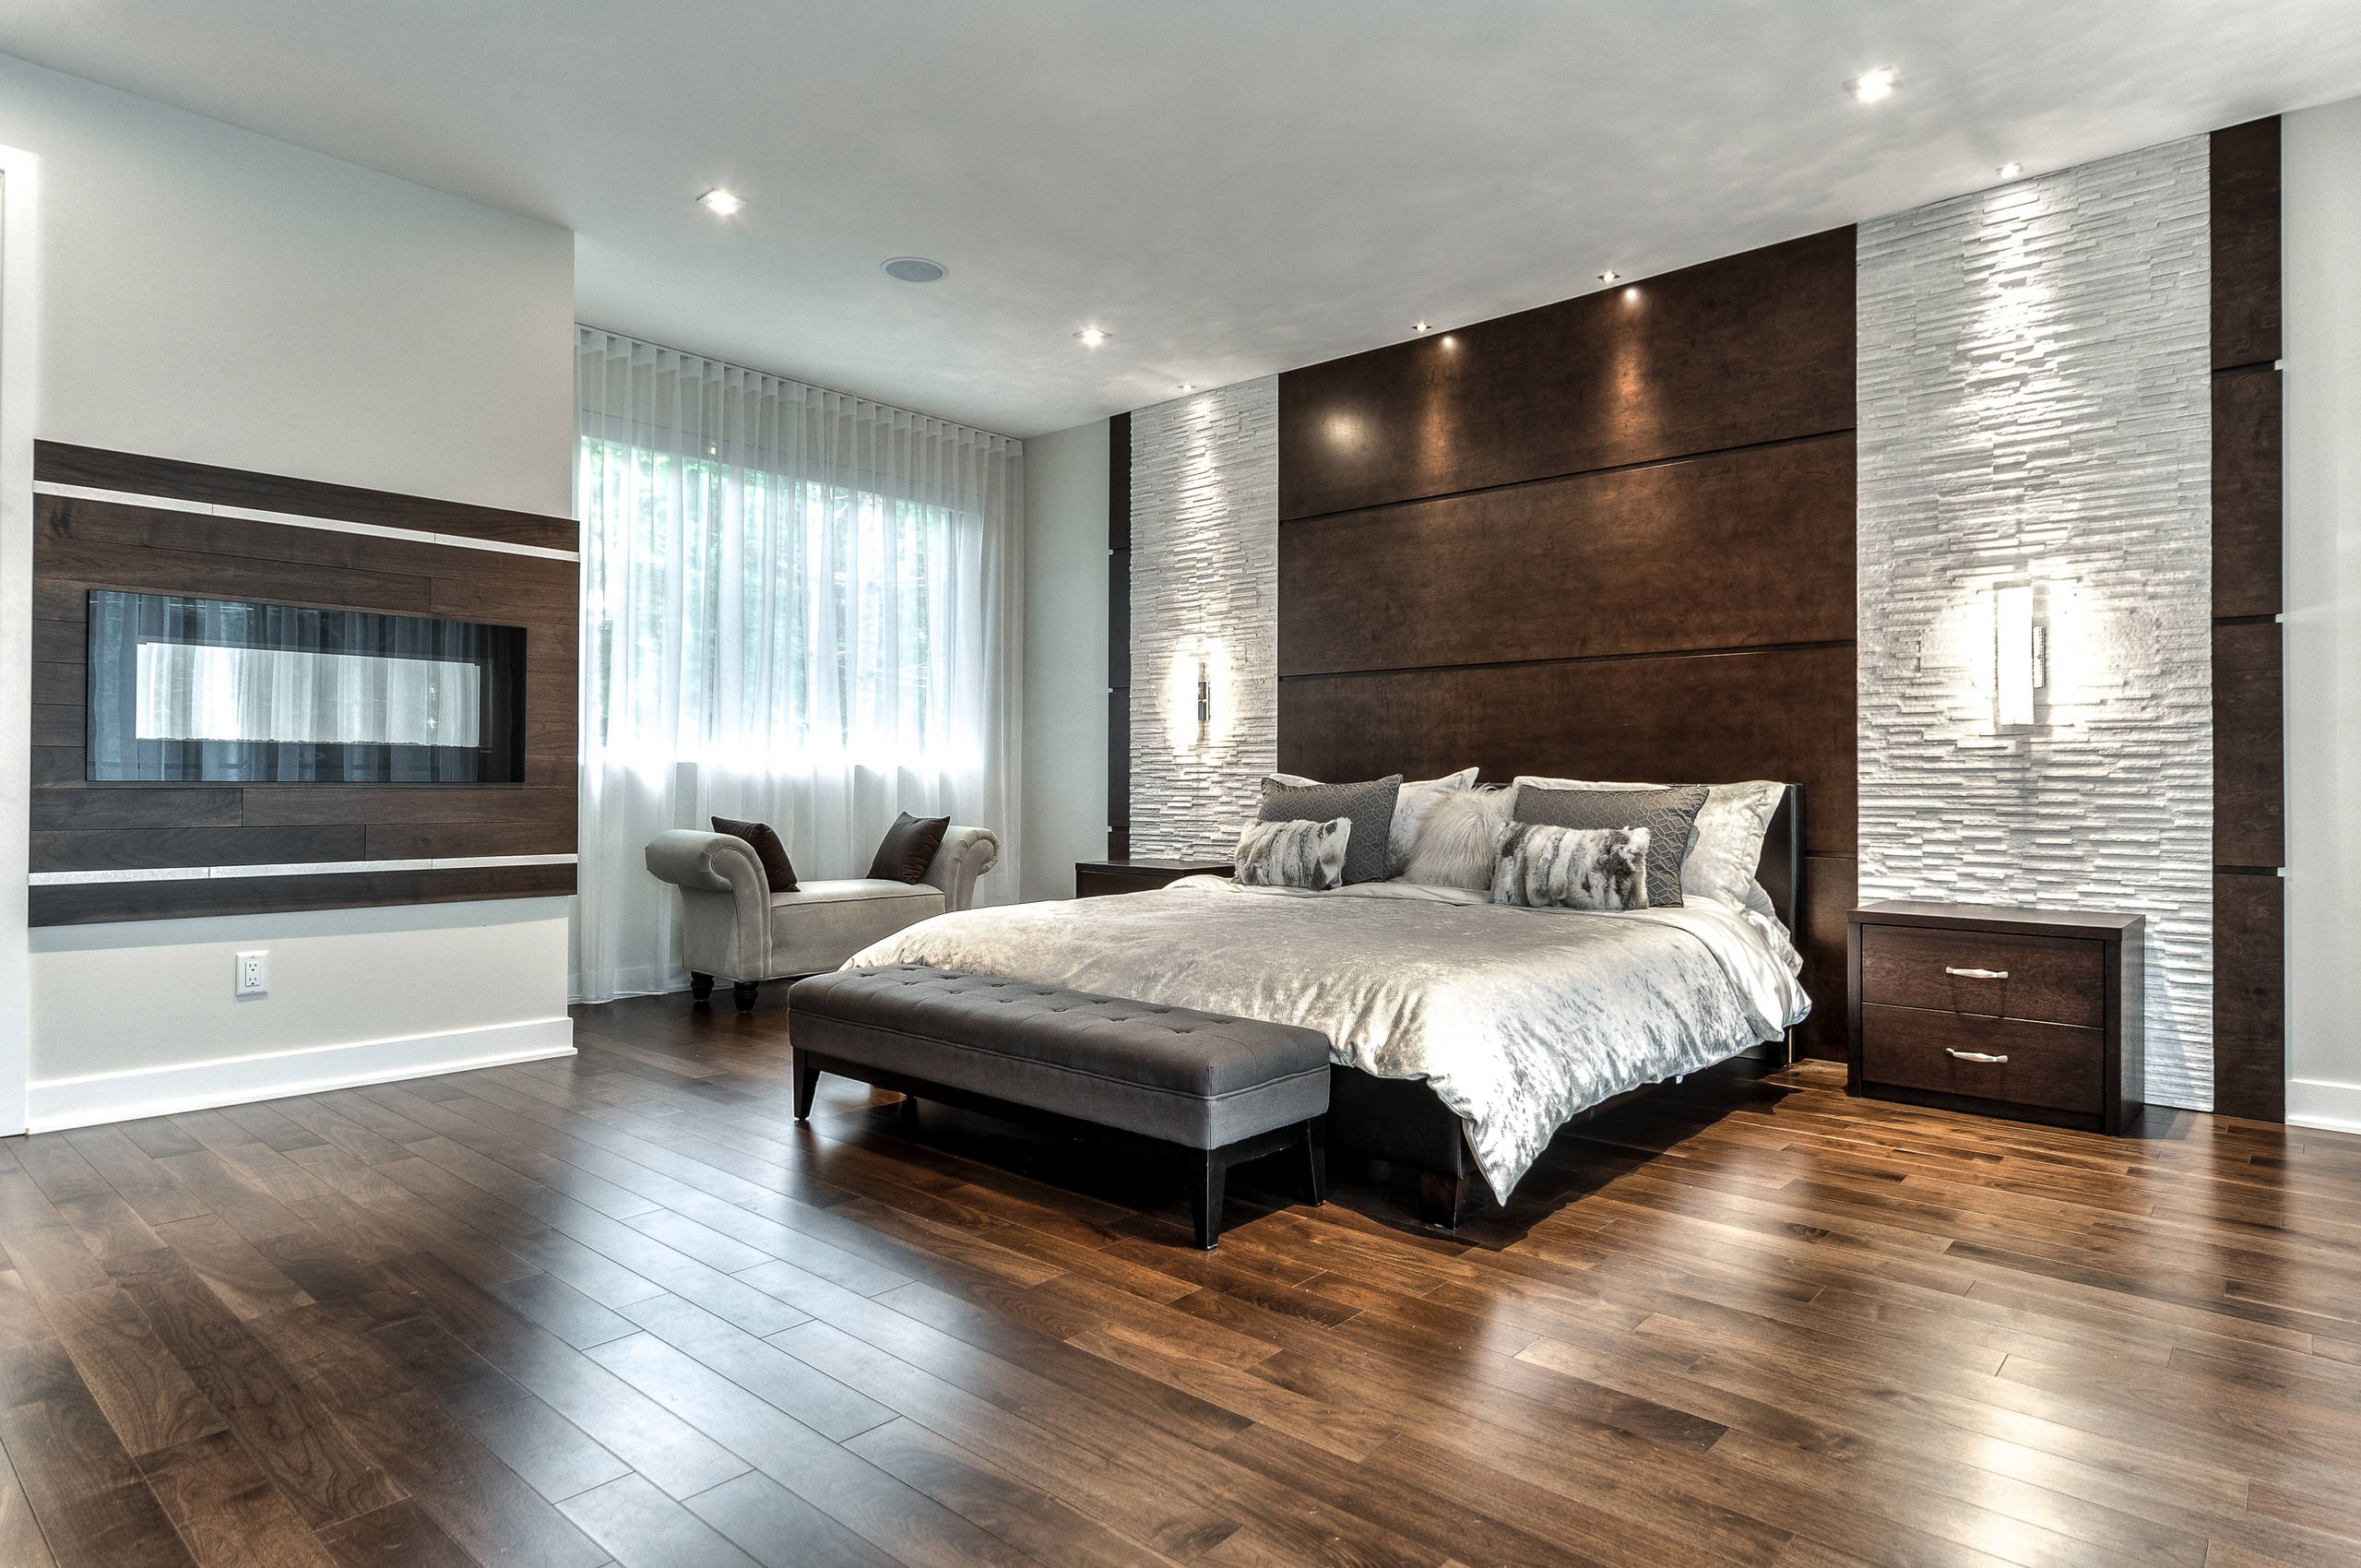 9 Beautiful Huge Modern Bedroom Pictures & Ideas - January, 9